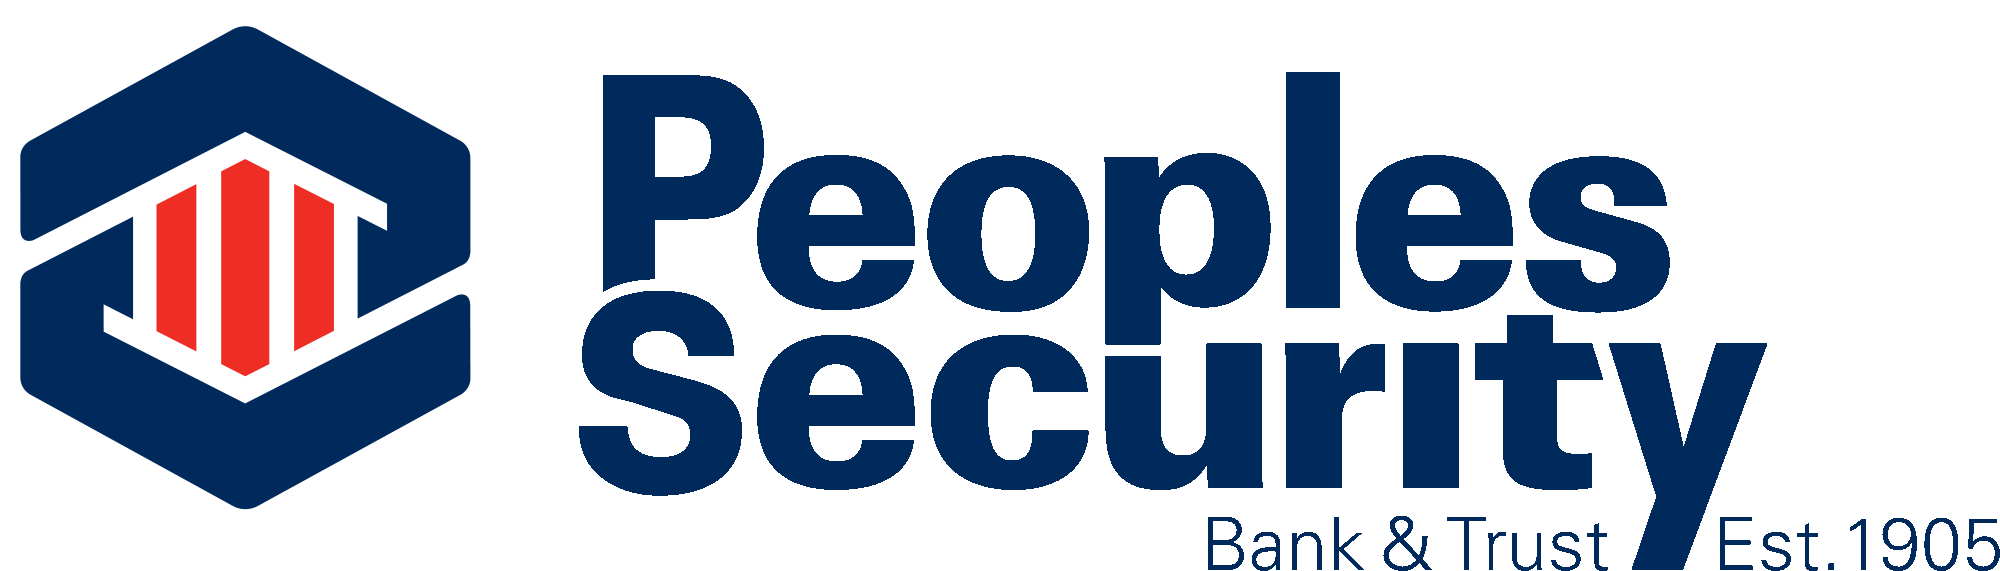 Peoples Security Bank & Trust Company